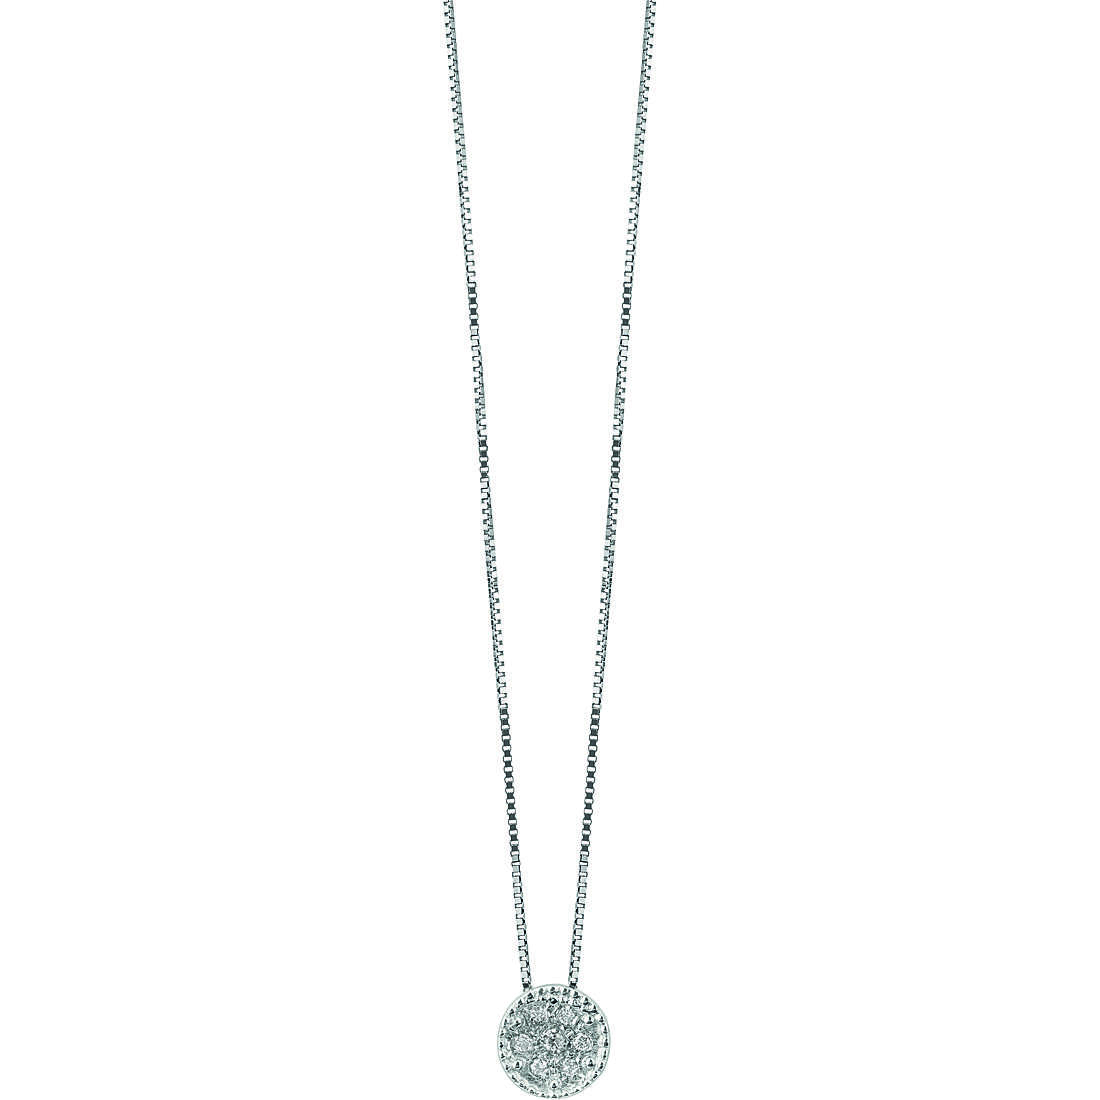 Bliss Necklace First Love White Gold With Round Diamond And 0.021 Ref.20076770